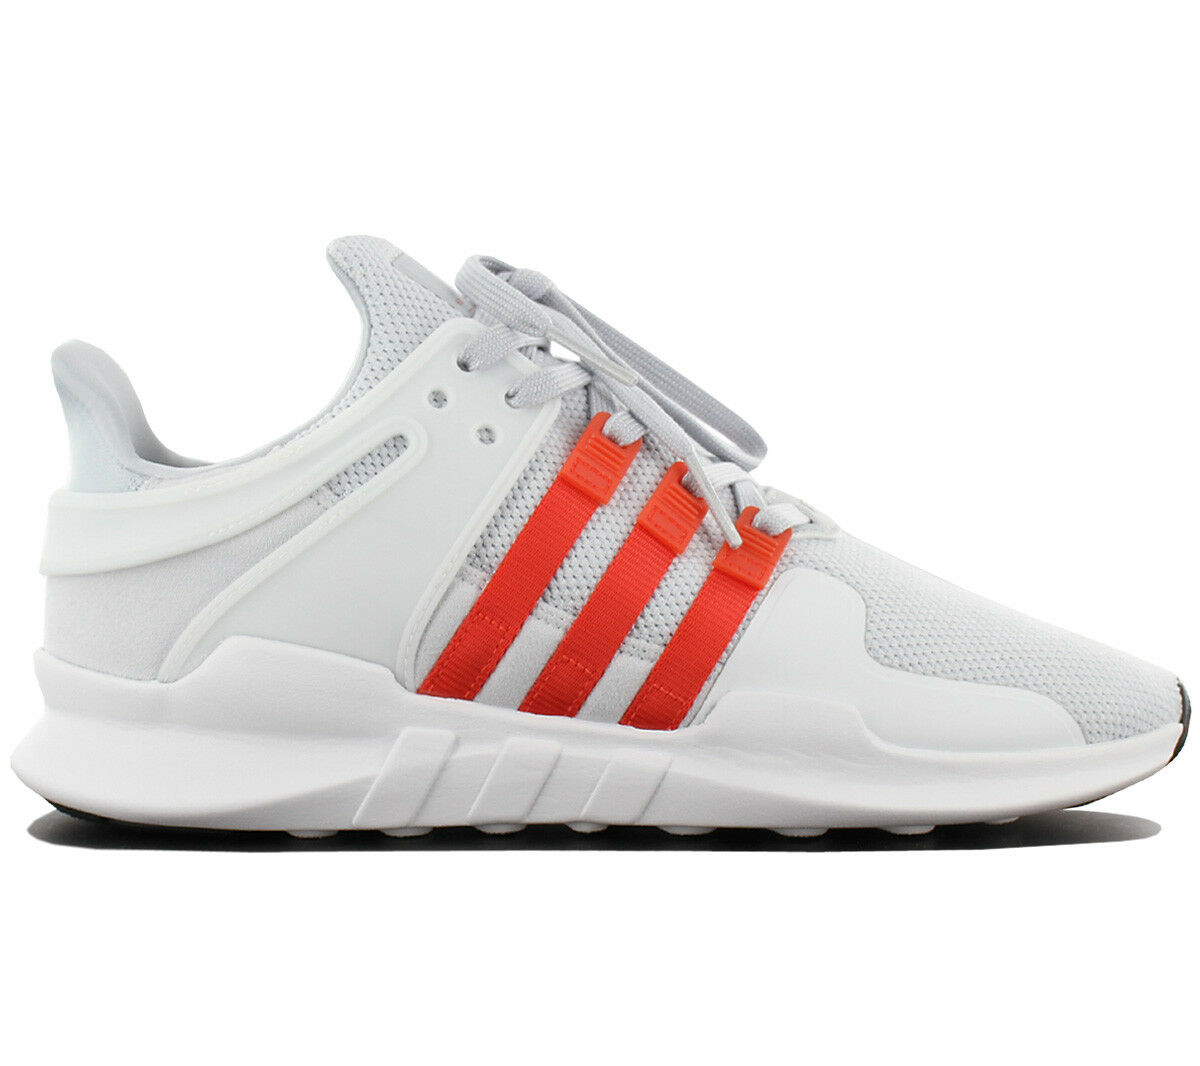 Adidas Originals Eqt Equipment Support Adv Fashion Zapatos Zapatillas BY9581